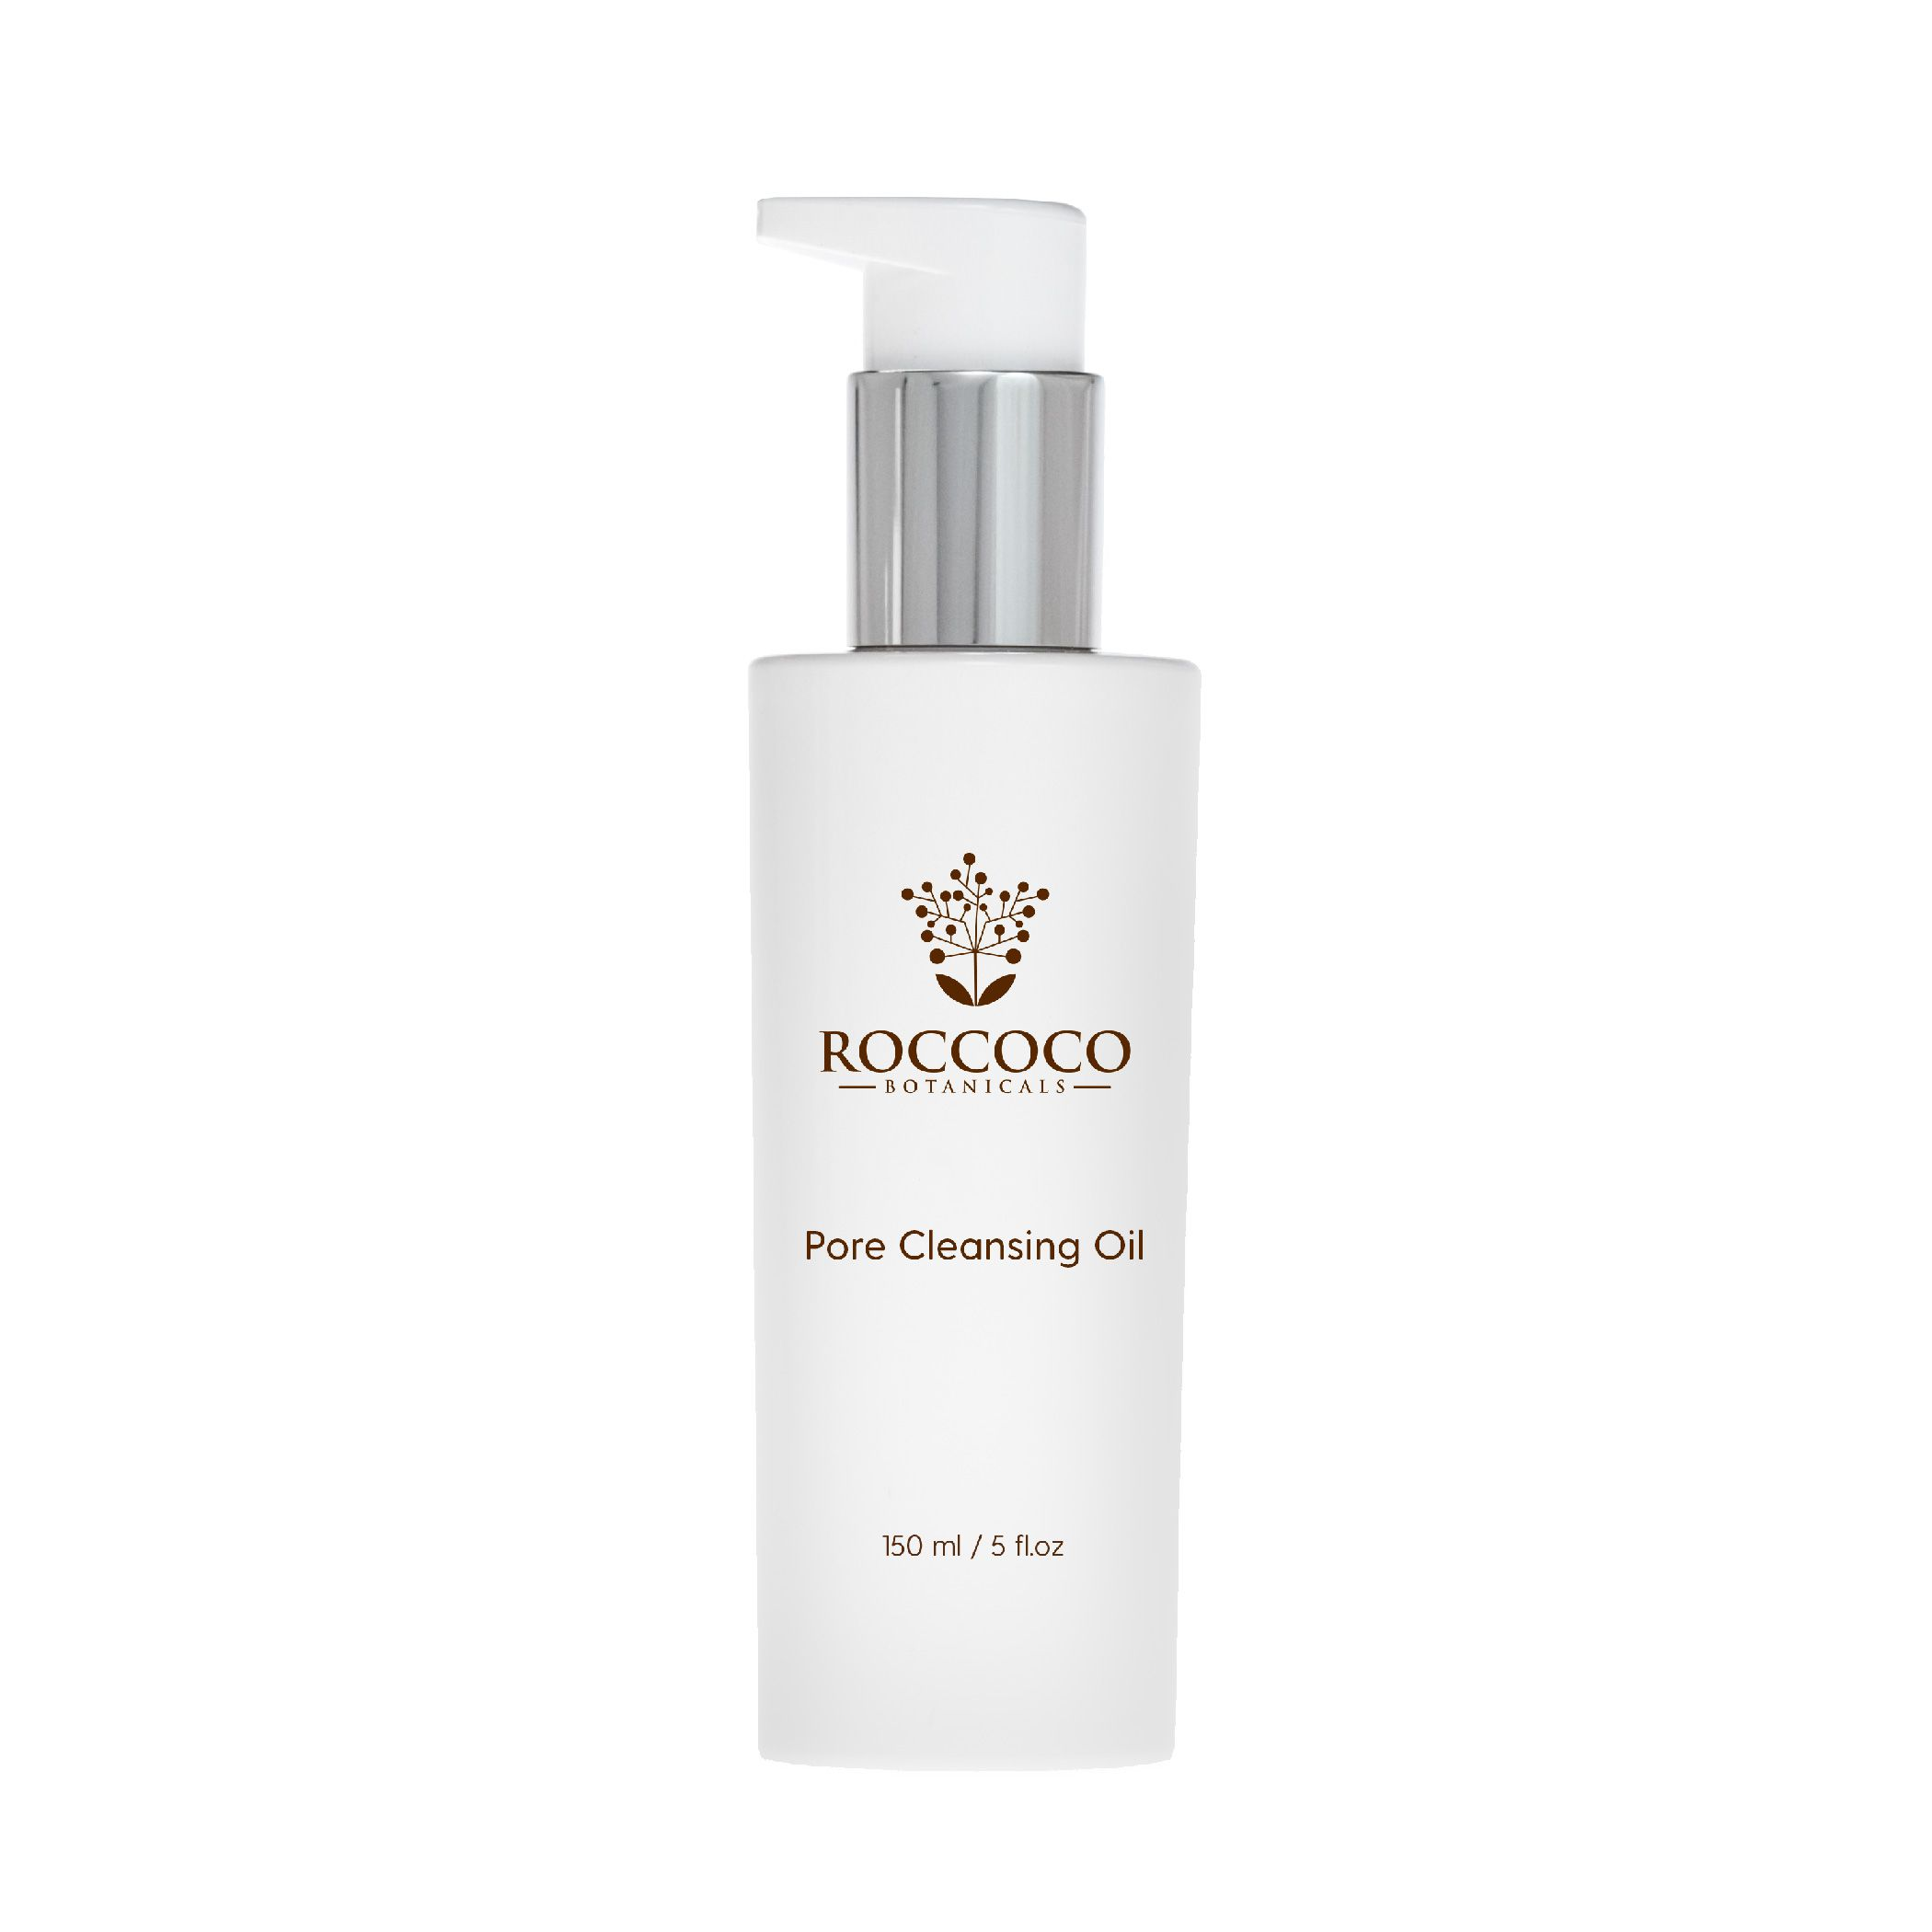 Roccoco Pore Cleansing Oil